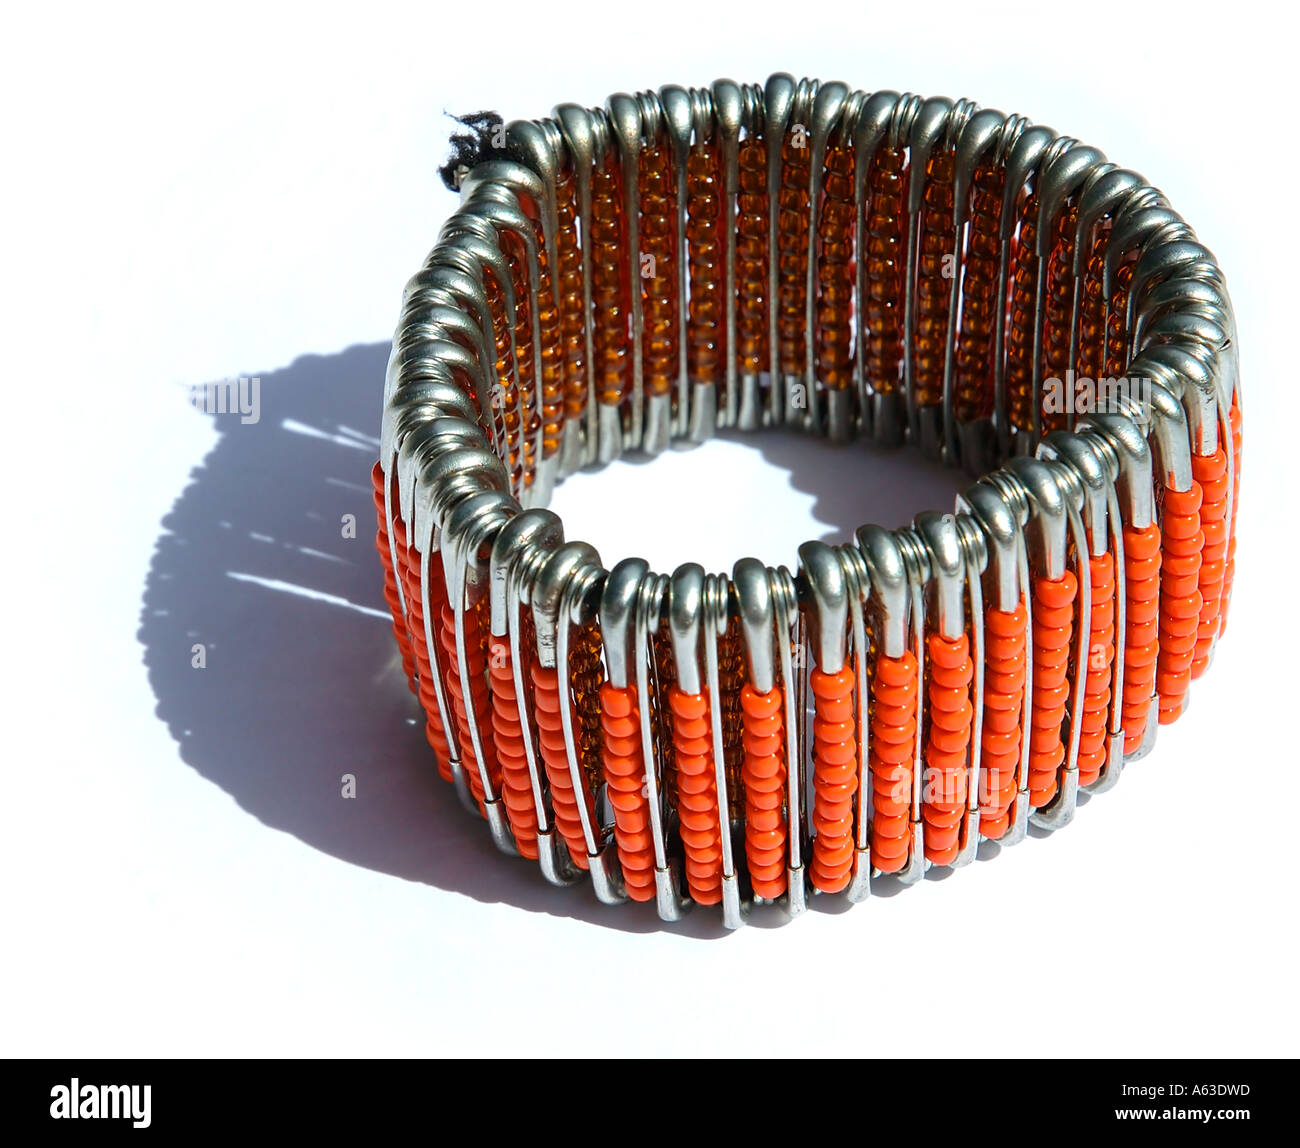 mens product contemporary by jewellery bracelet original industrialjewellery industrial textured